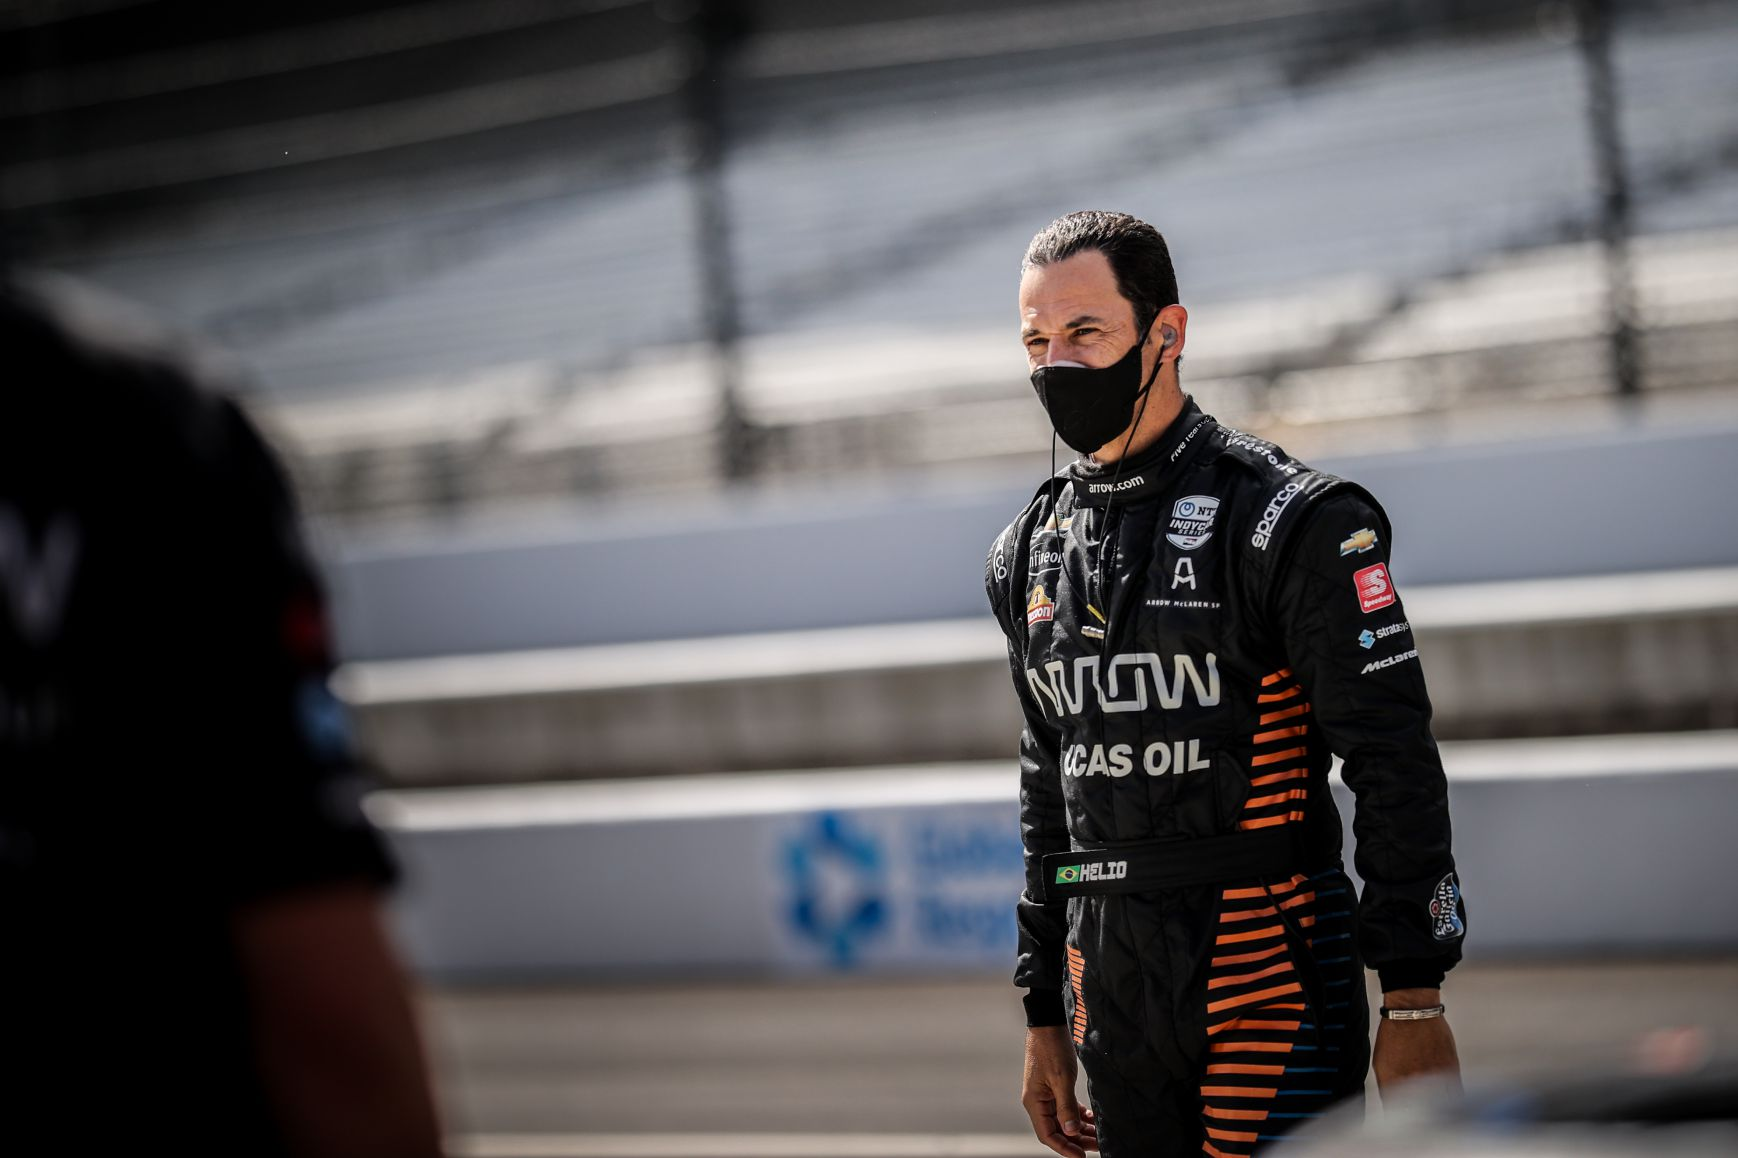 Helio Castroneves drove for Arrow McLaren SP in the INDYCAR Harvest GP at the Indianapolis Motor Speedway. © [Andy Clary/ Spacesuit Media]